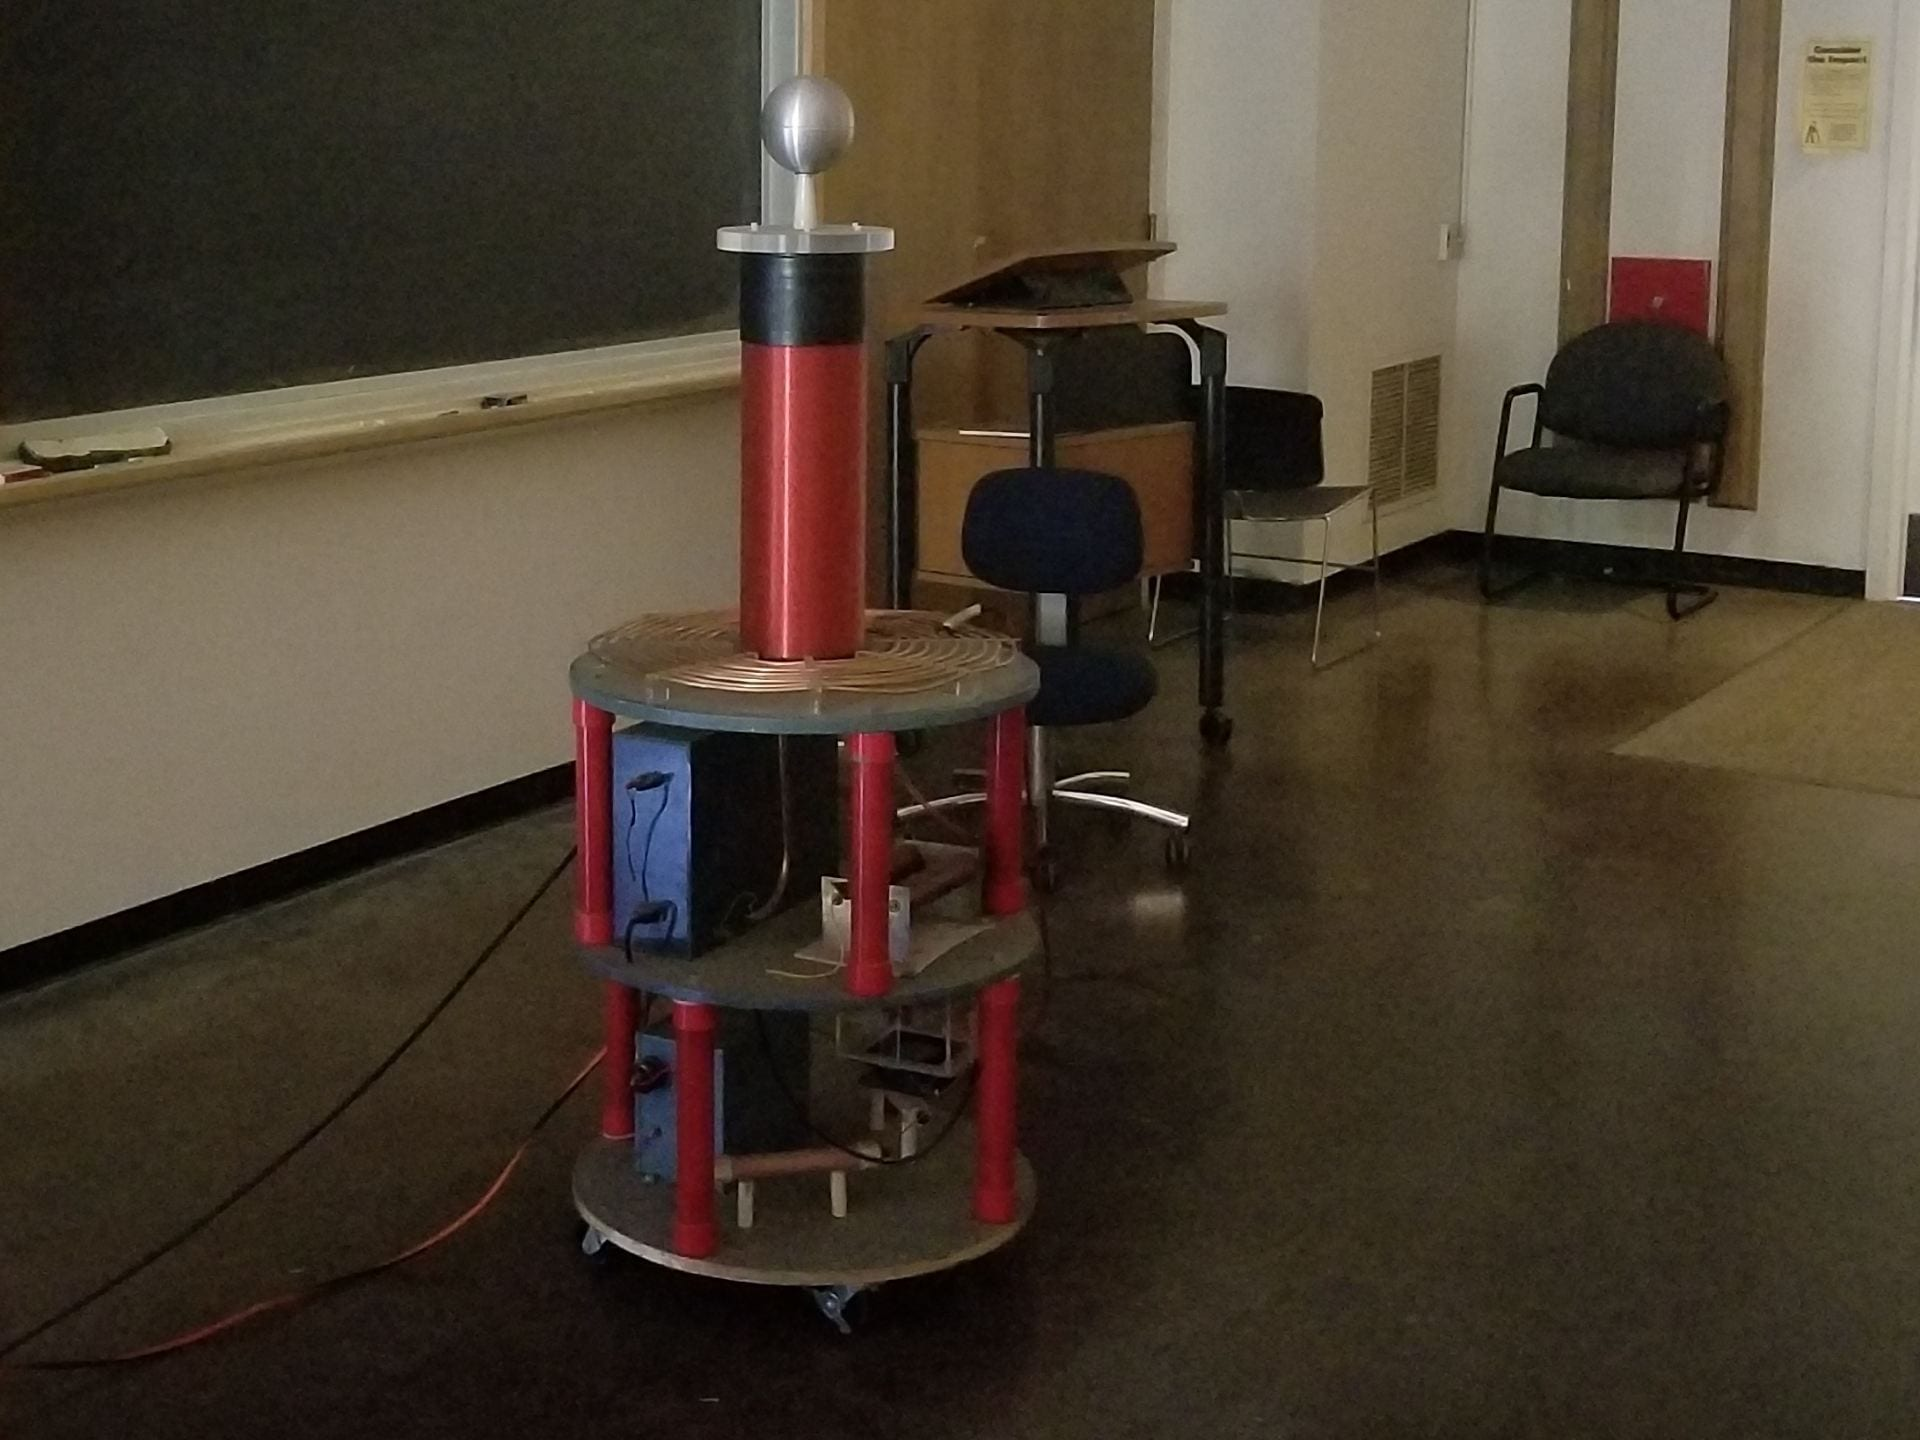 Tesla Coil Ucsc Physics Demonstration Room High Frequency Solid State Circuit Figure 8 Our In Thimann 3